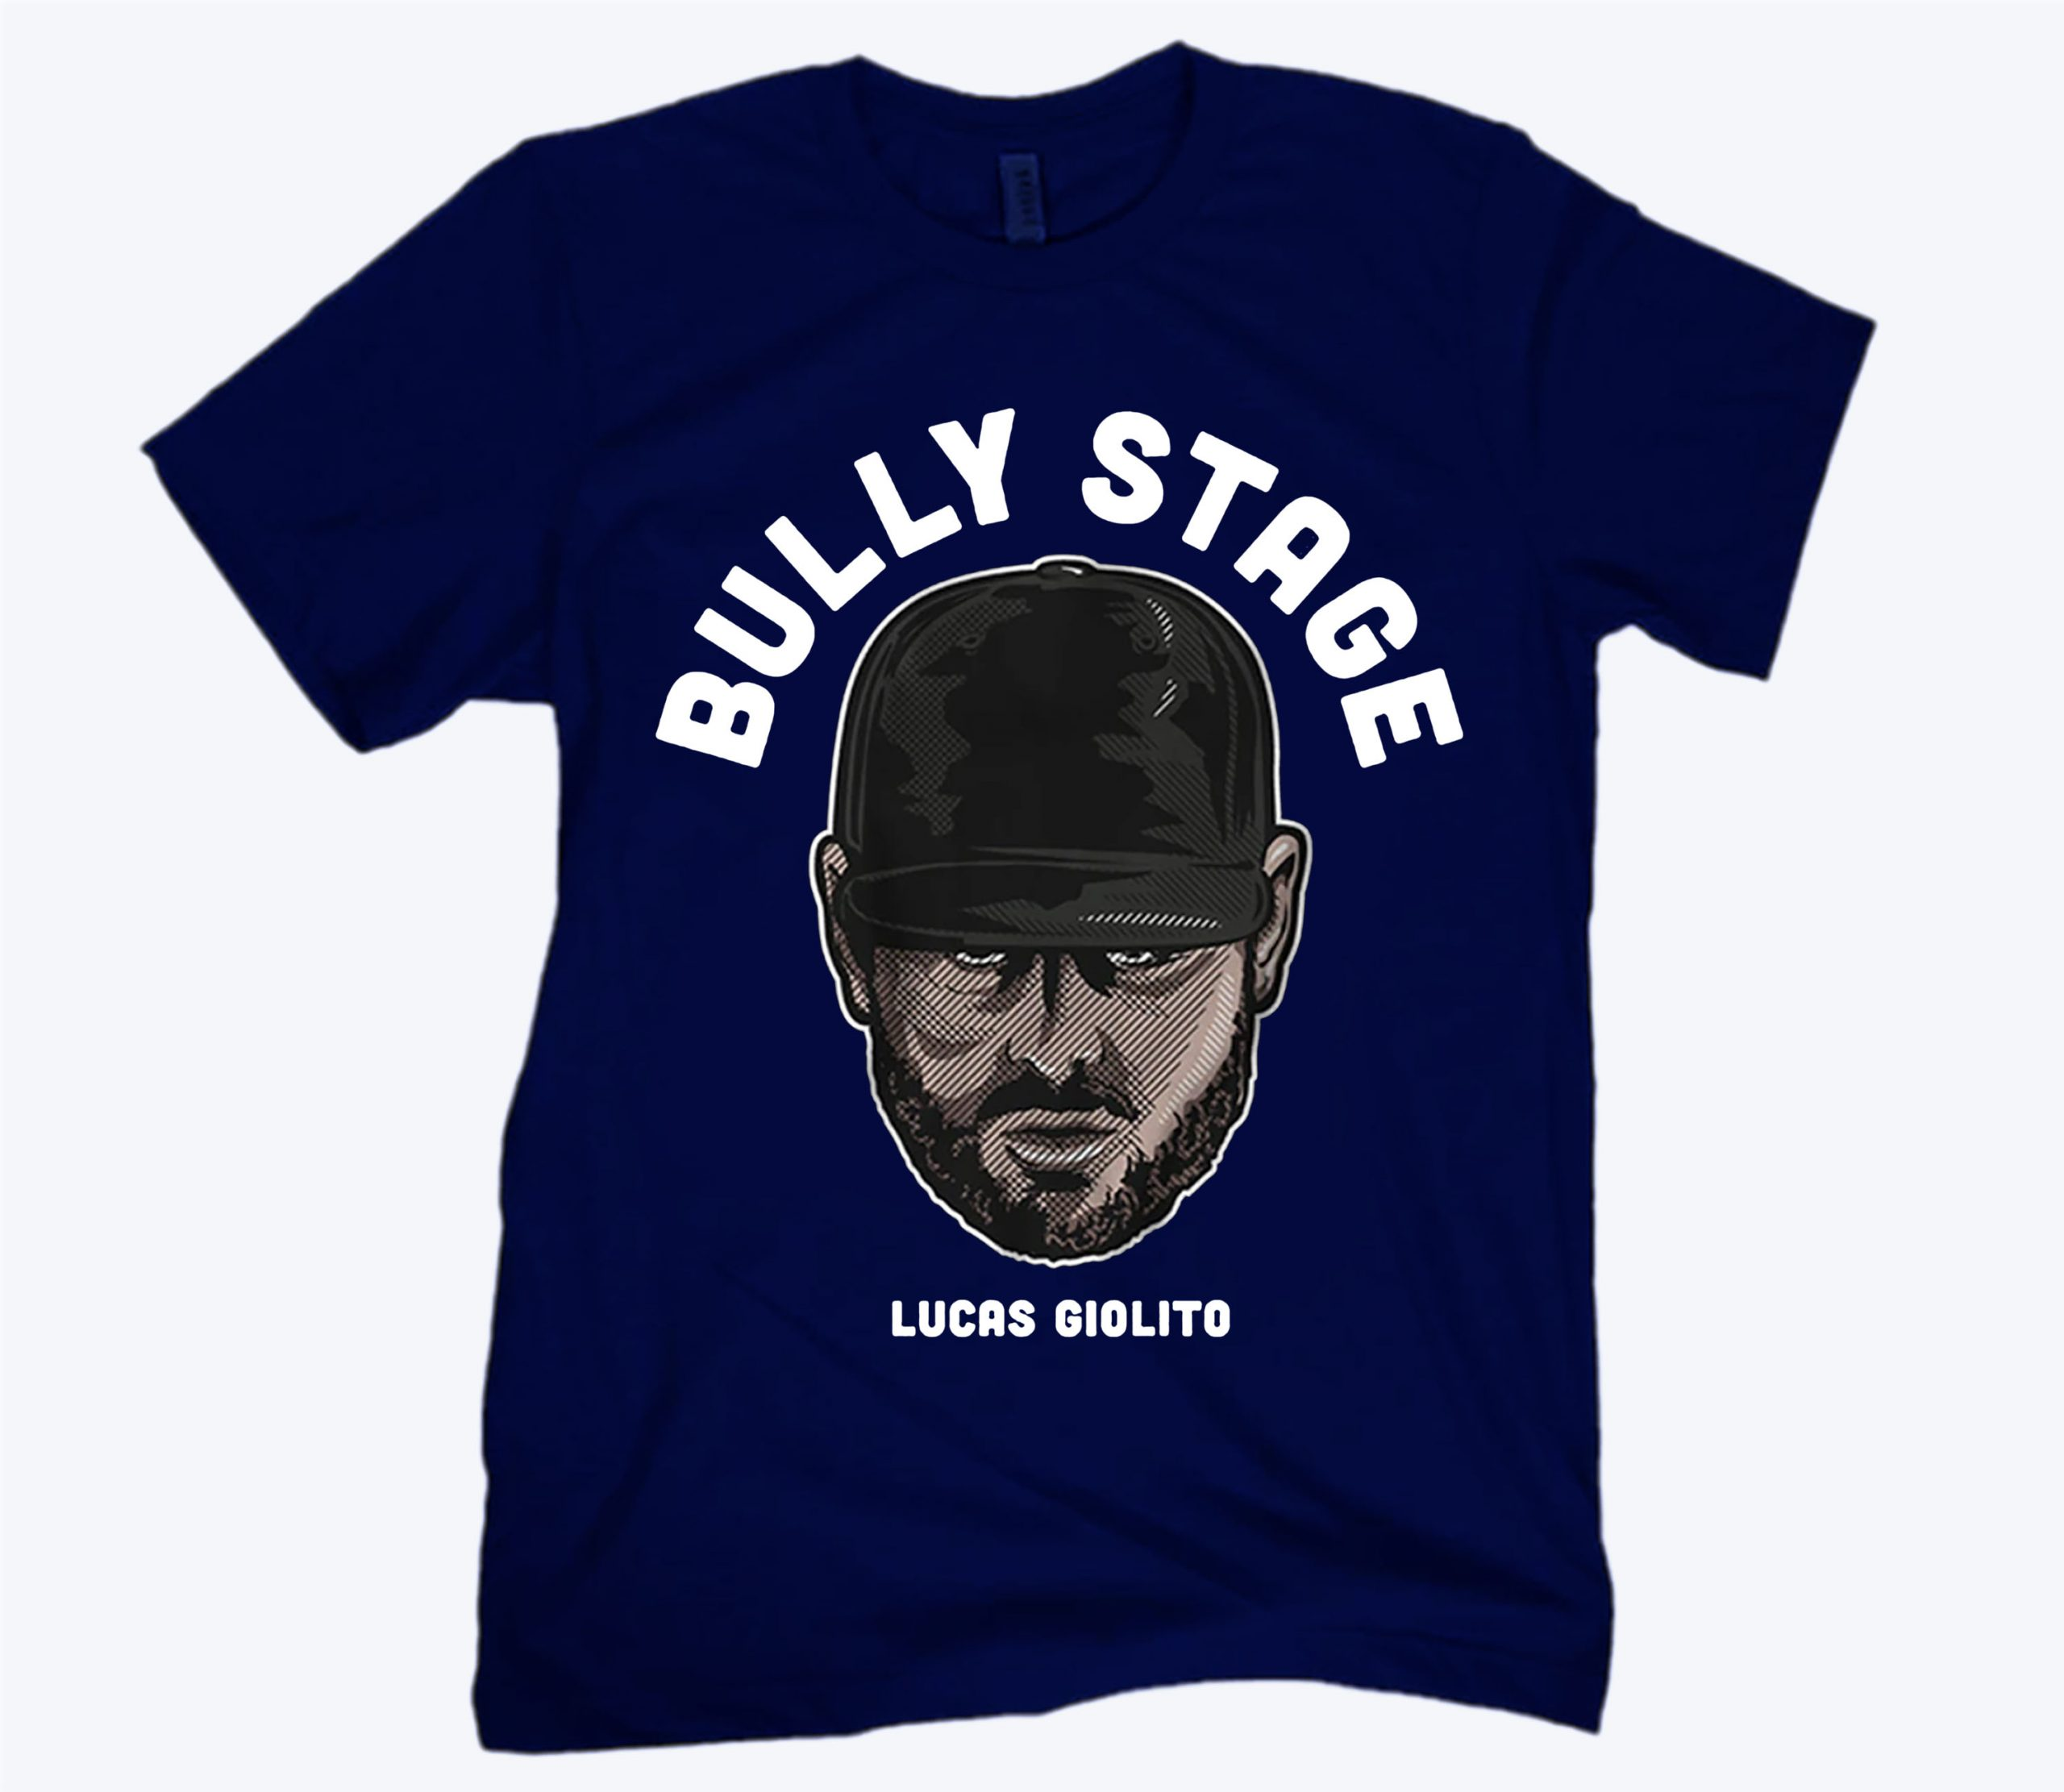 BULLY STAGE LUCAS GIOLITO T-SHIRT